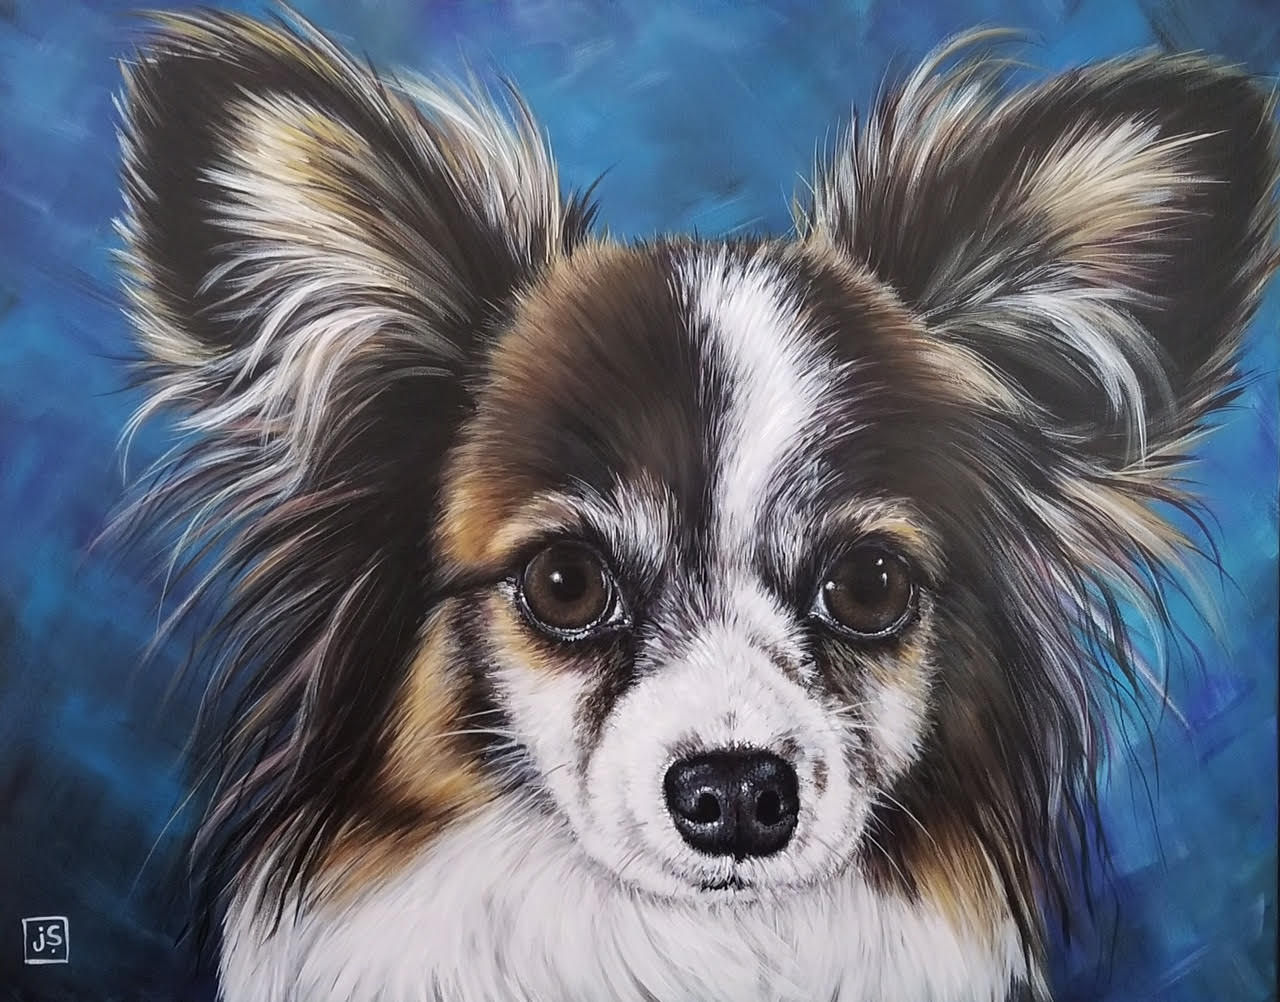 66889c971ae4 I used to mainly draw with graphite pencils and color pencils. Back in my  20's, I was always asked to draw my coworkers pets ...